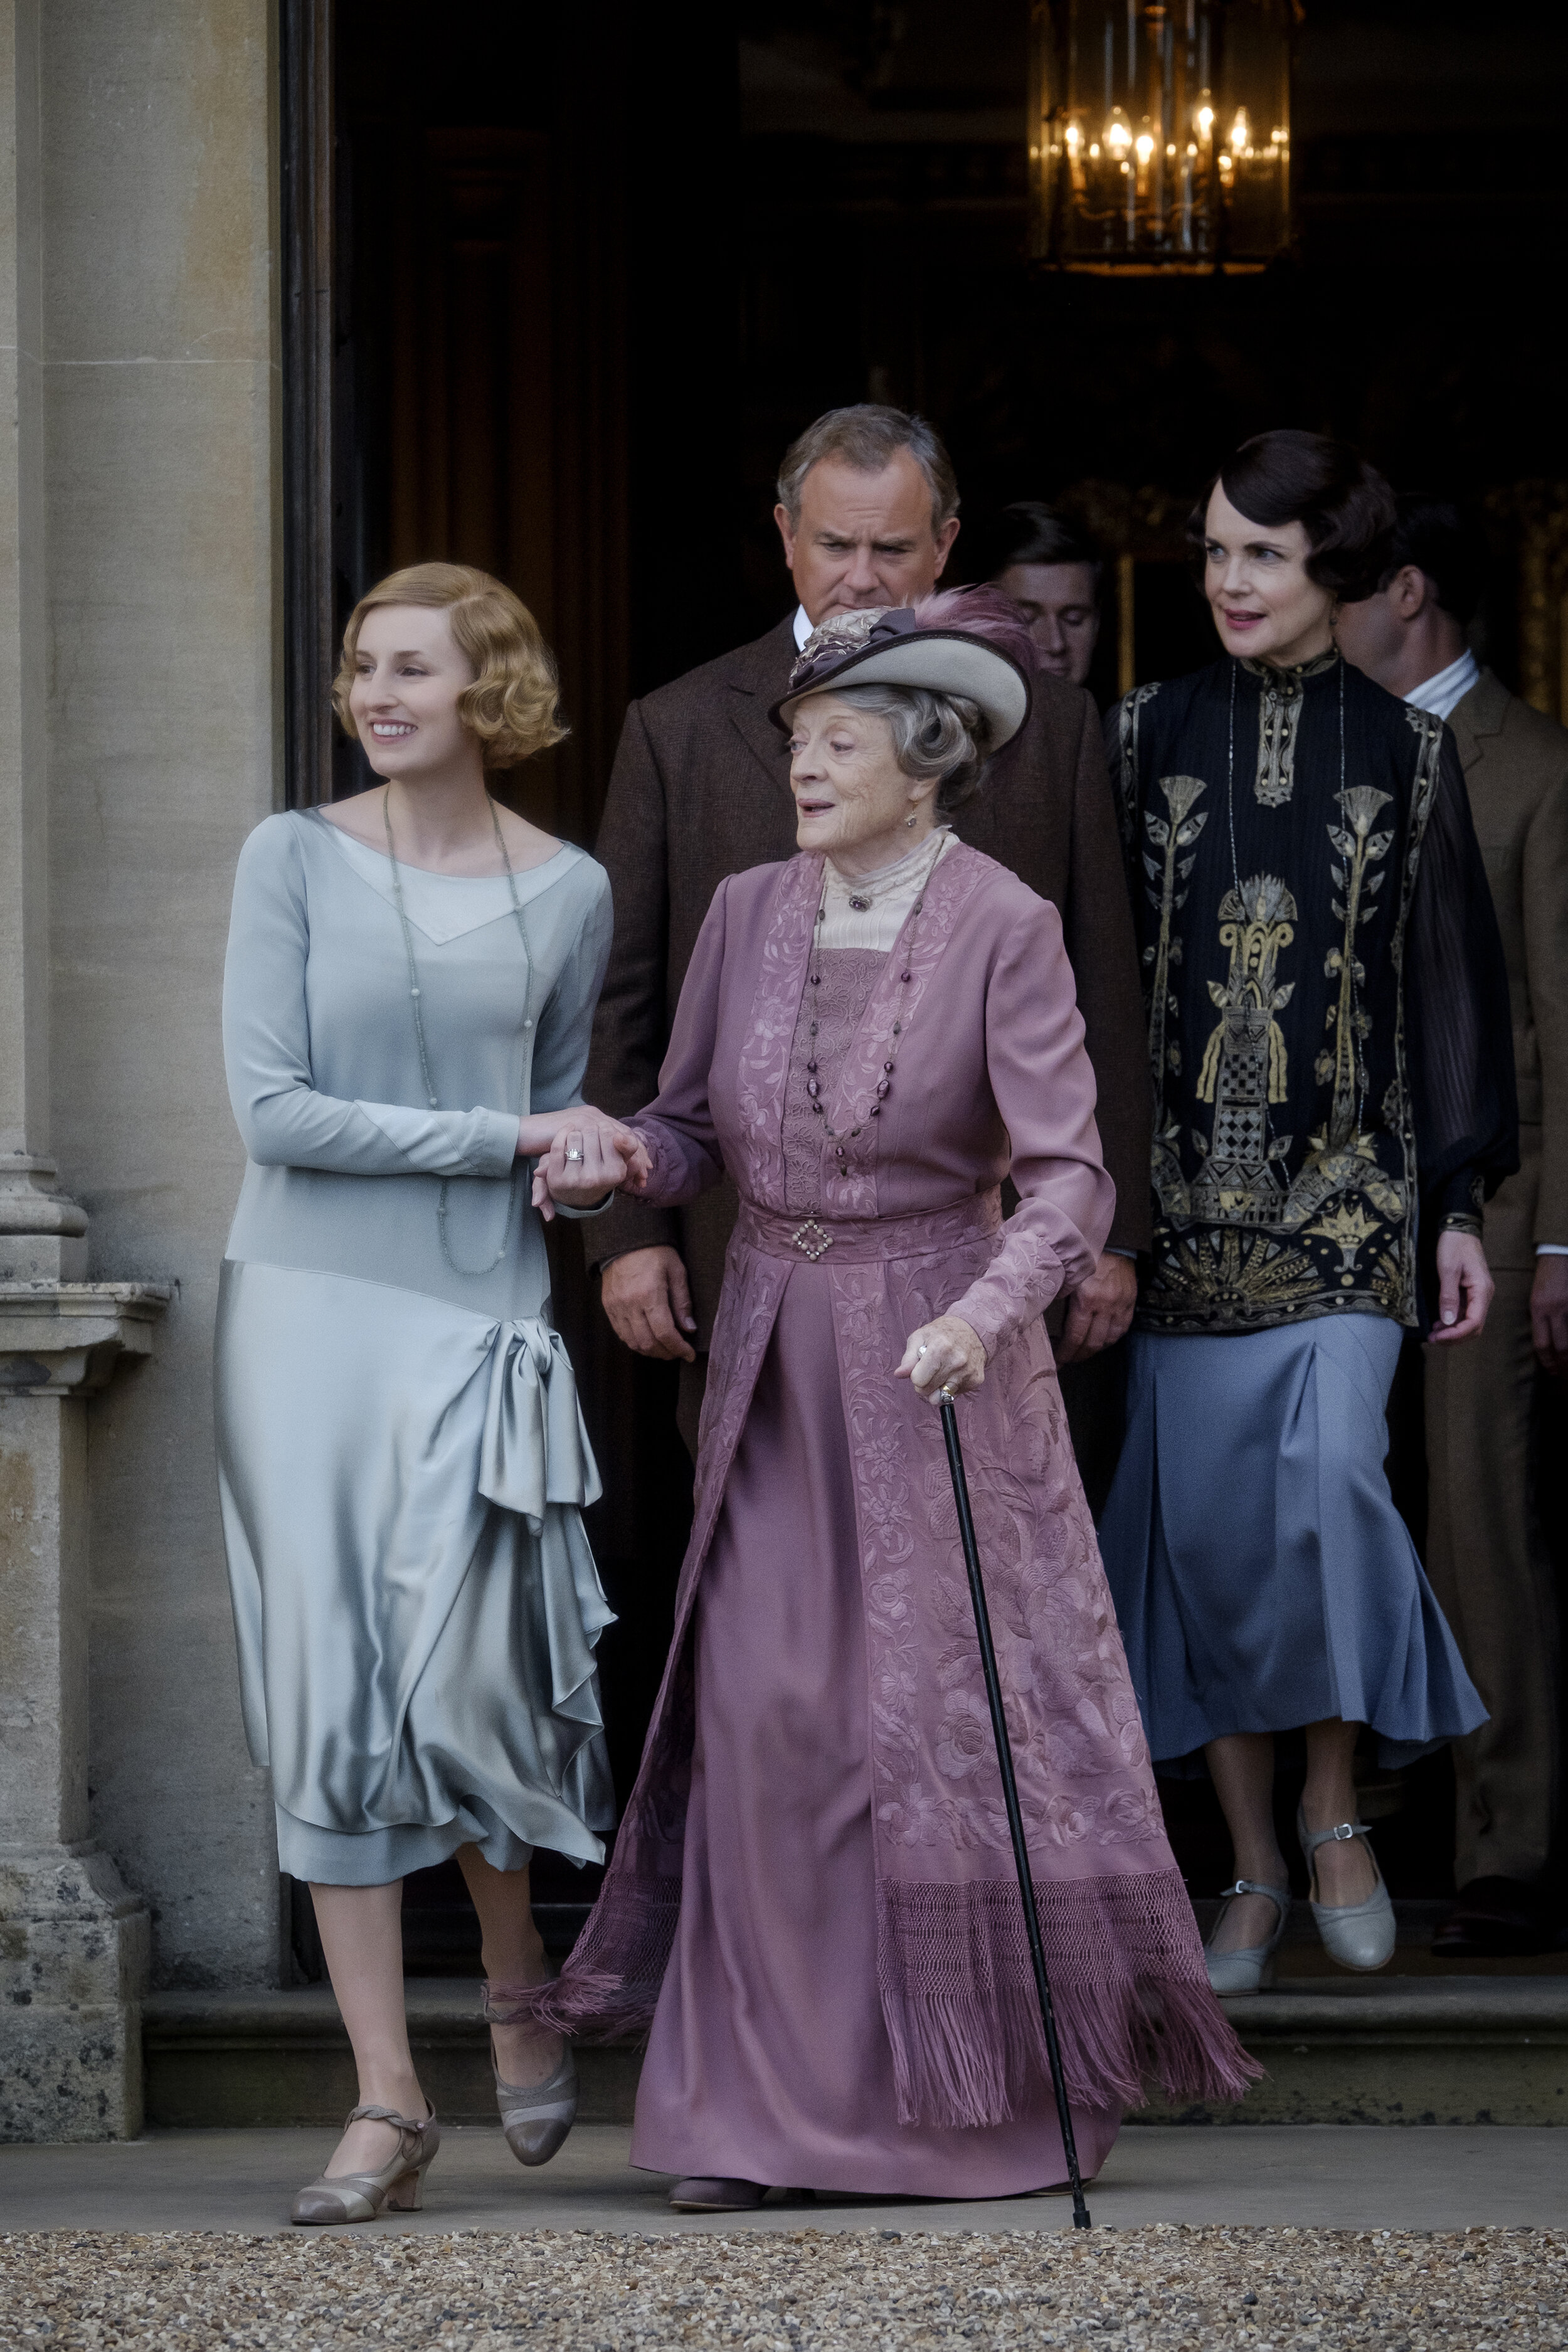 Dame Maggie Smith as Violet Crawley being led to greet royalty.